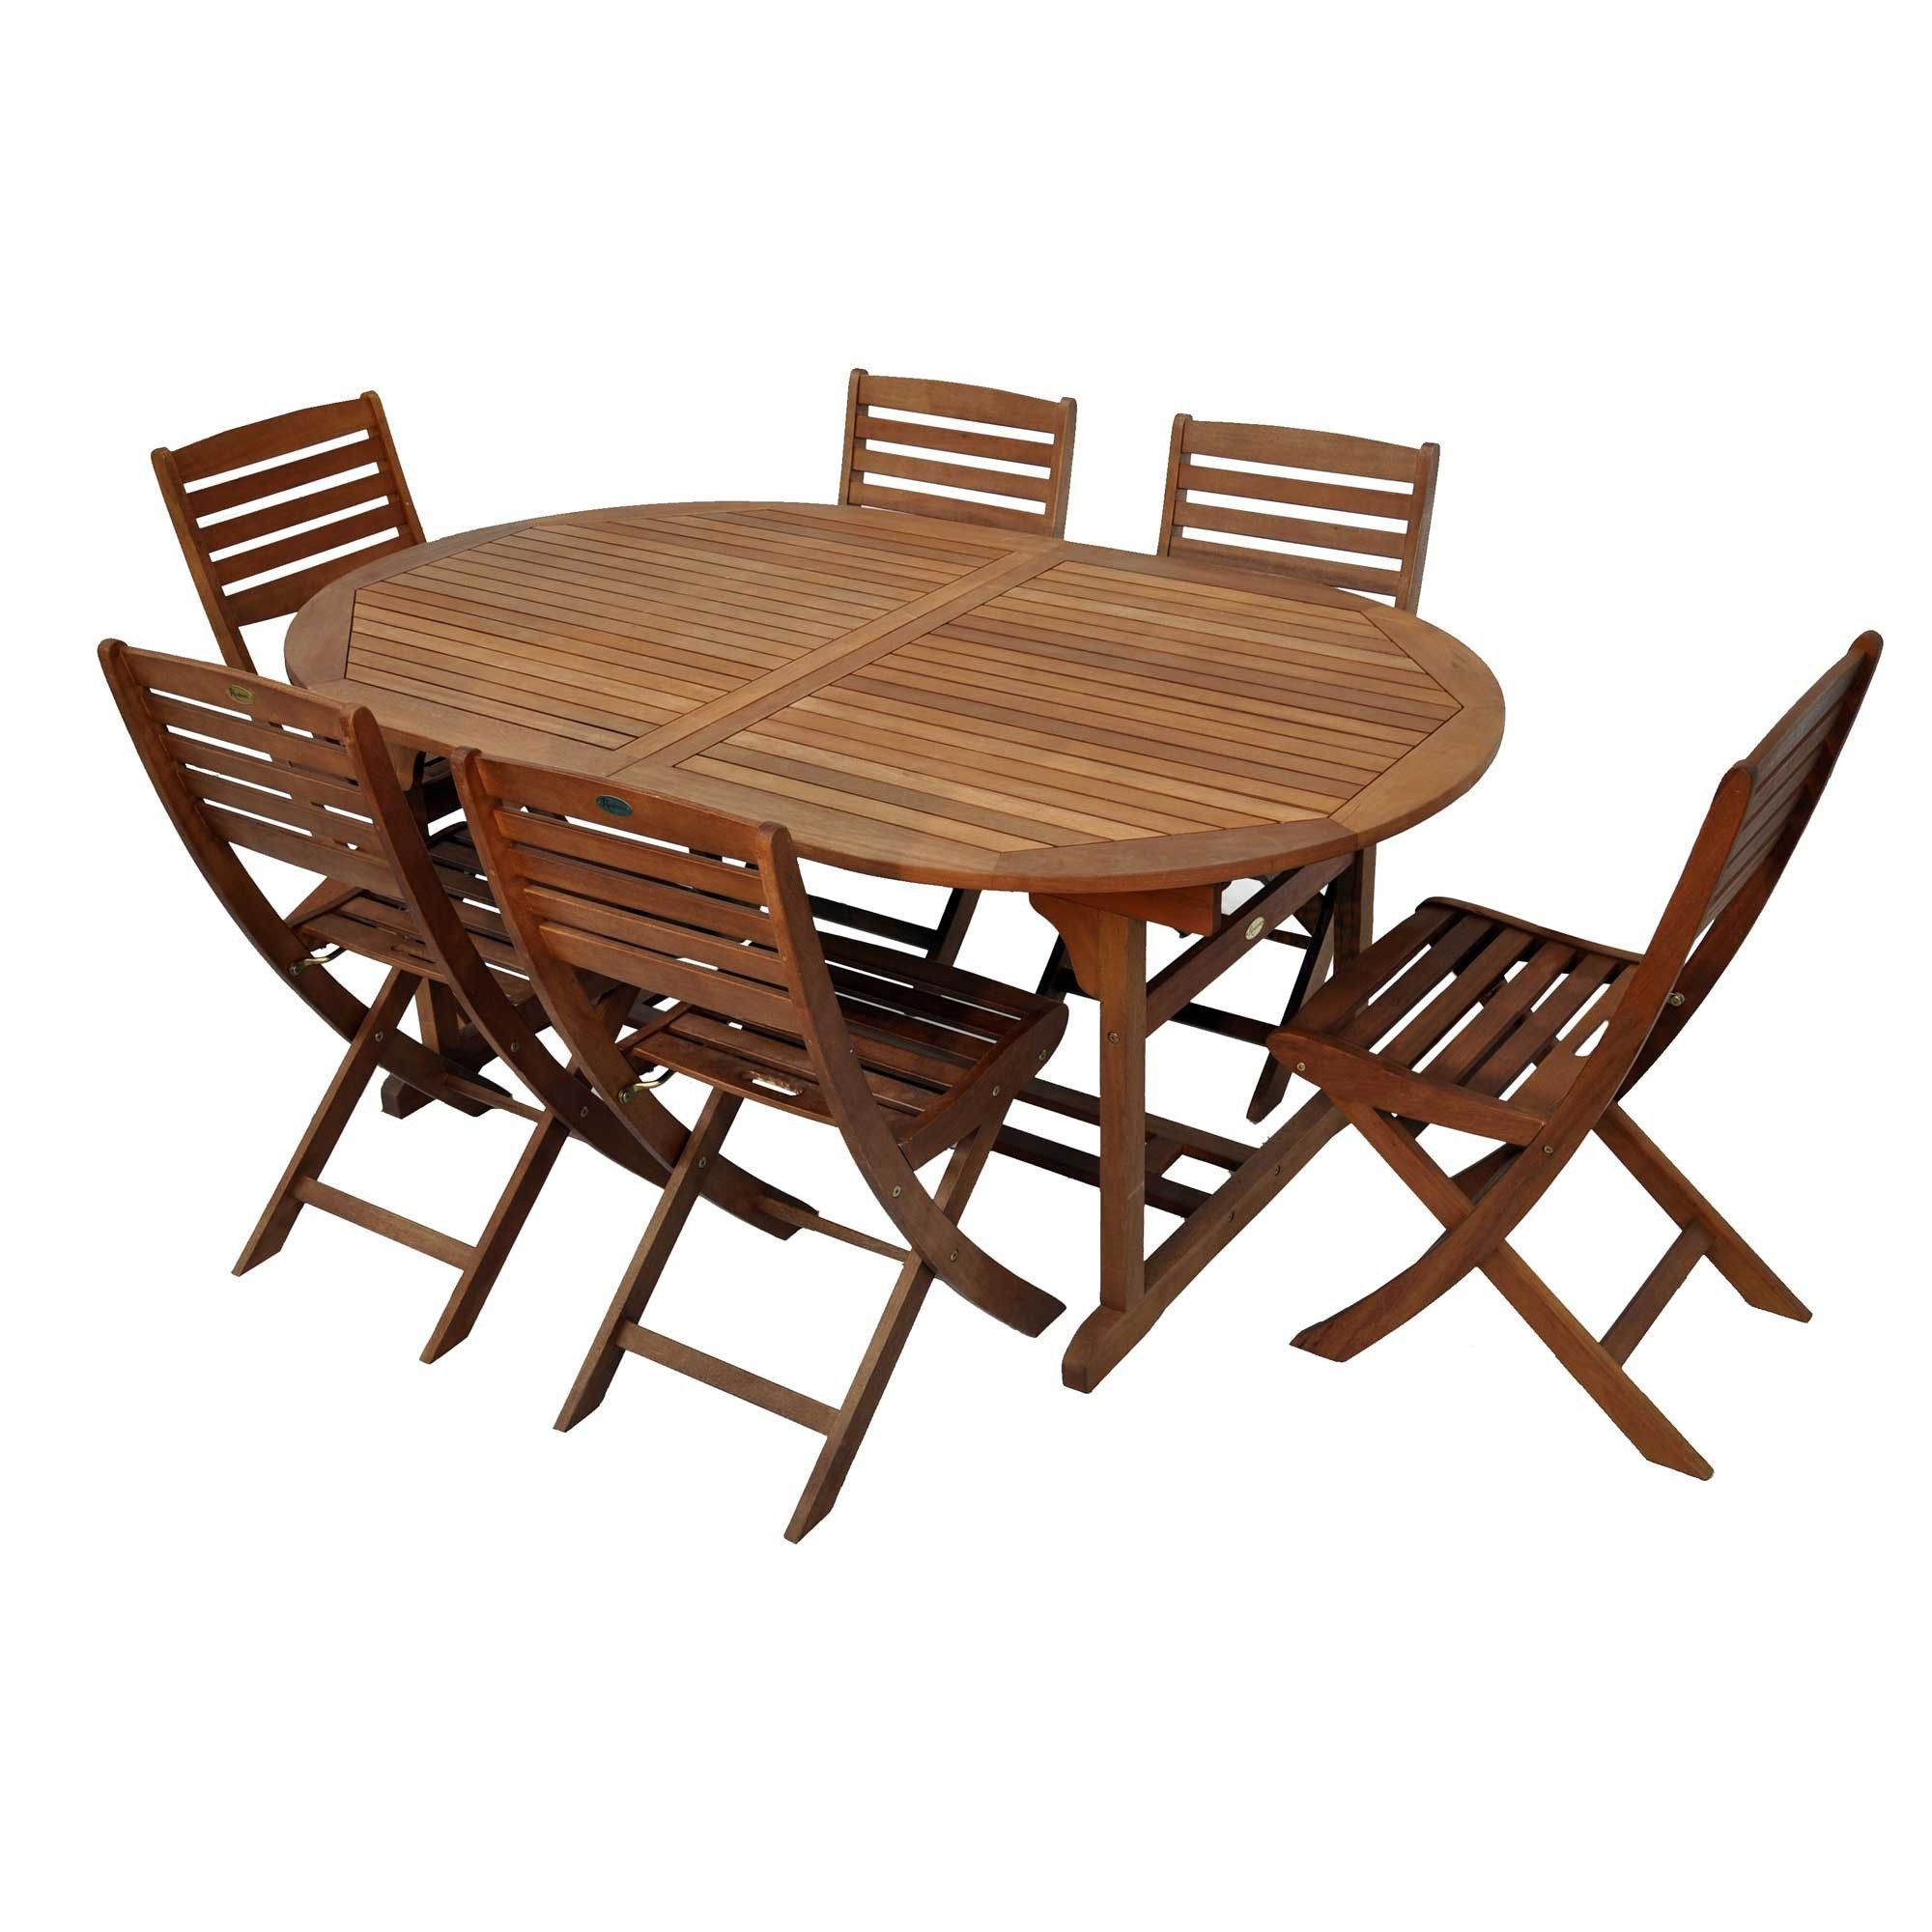 Chaise Jardin Carrefour Inspirant Stock Table Et Chaise ... encequiconcerne Table Et Chaise De Jardin Carrefour